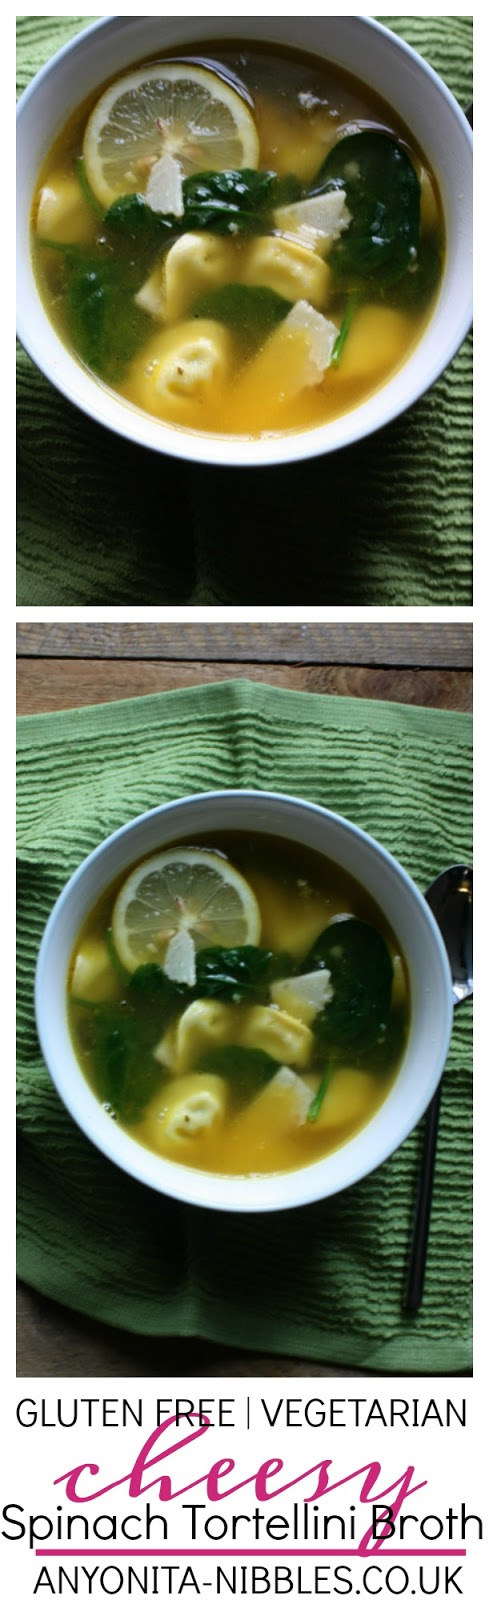 Gluten Free Cheesy Spinach Tortellini Broth | Anyonita-Nibbles.co.uk